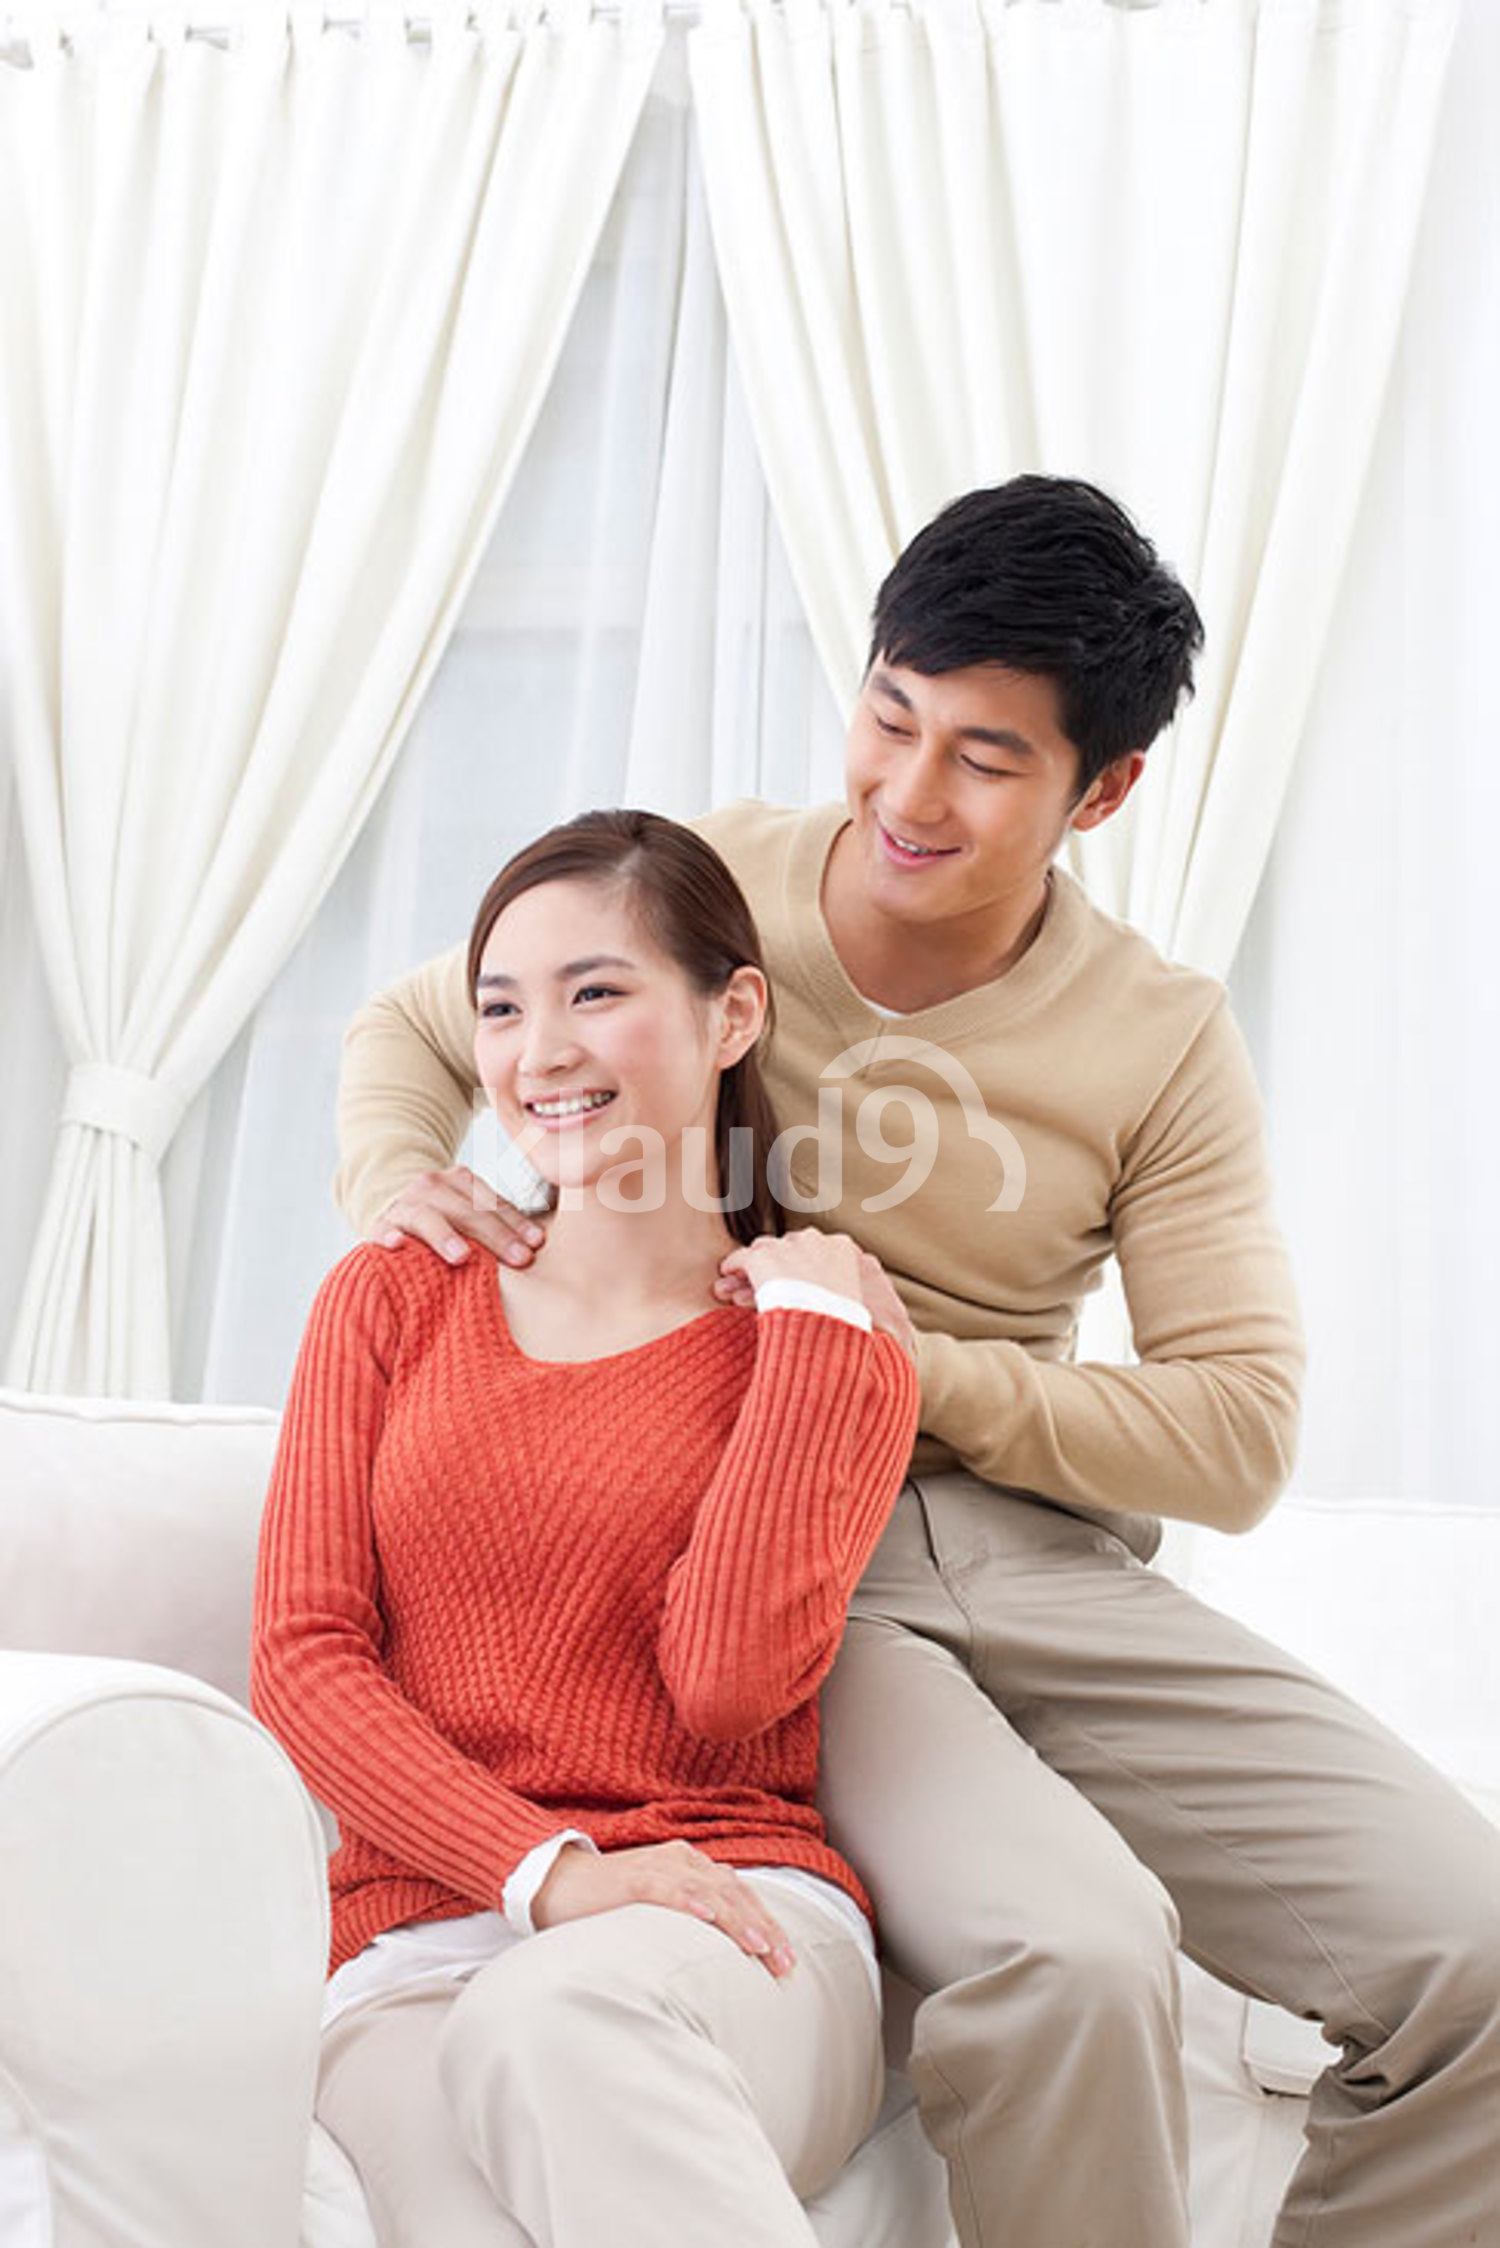 Chinese husband doing message for his wife